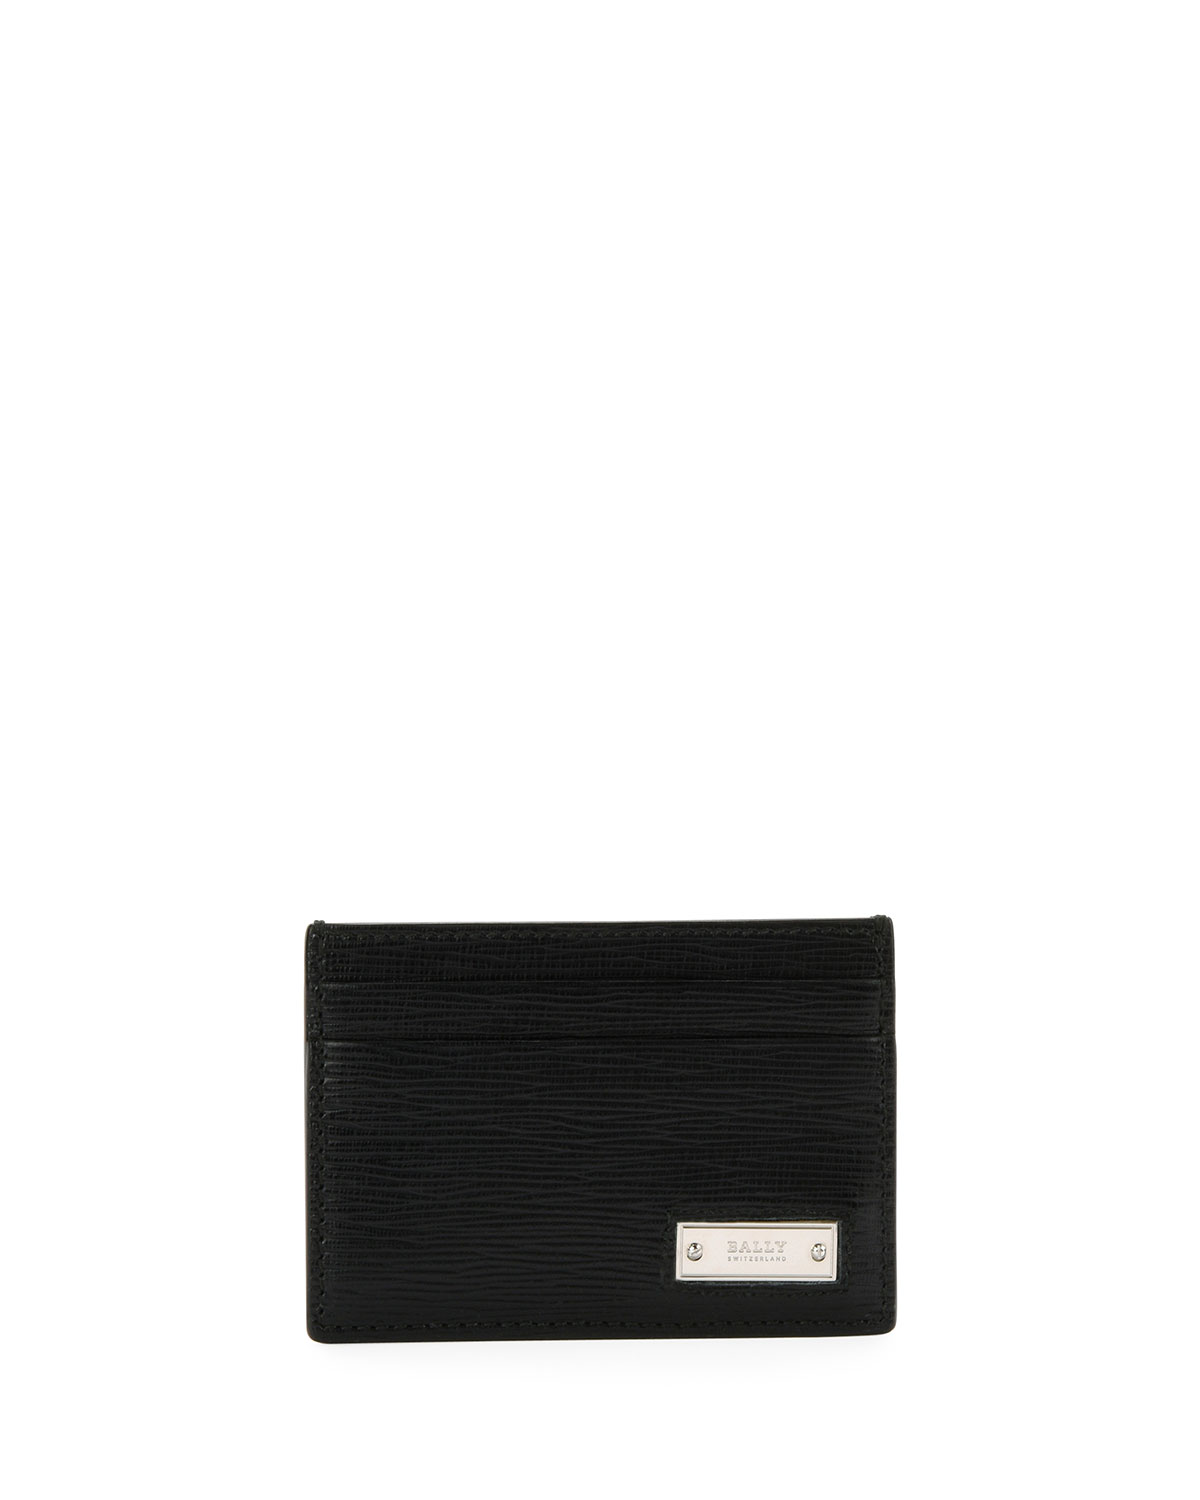 BALLY MEN'S BHAR LEATHER CARD CASE, BLACK